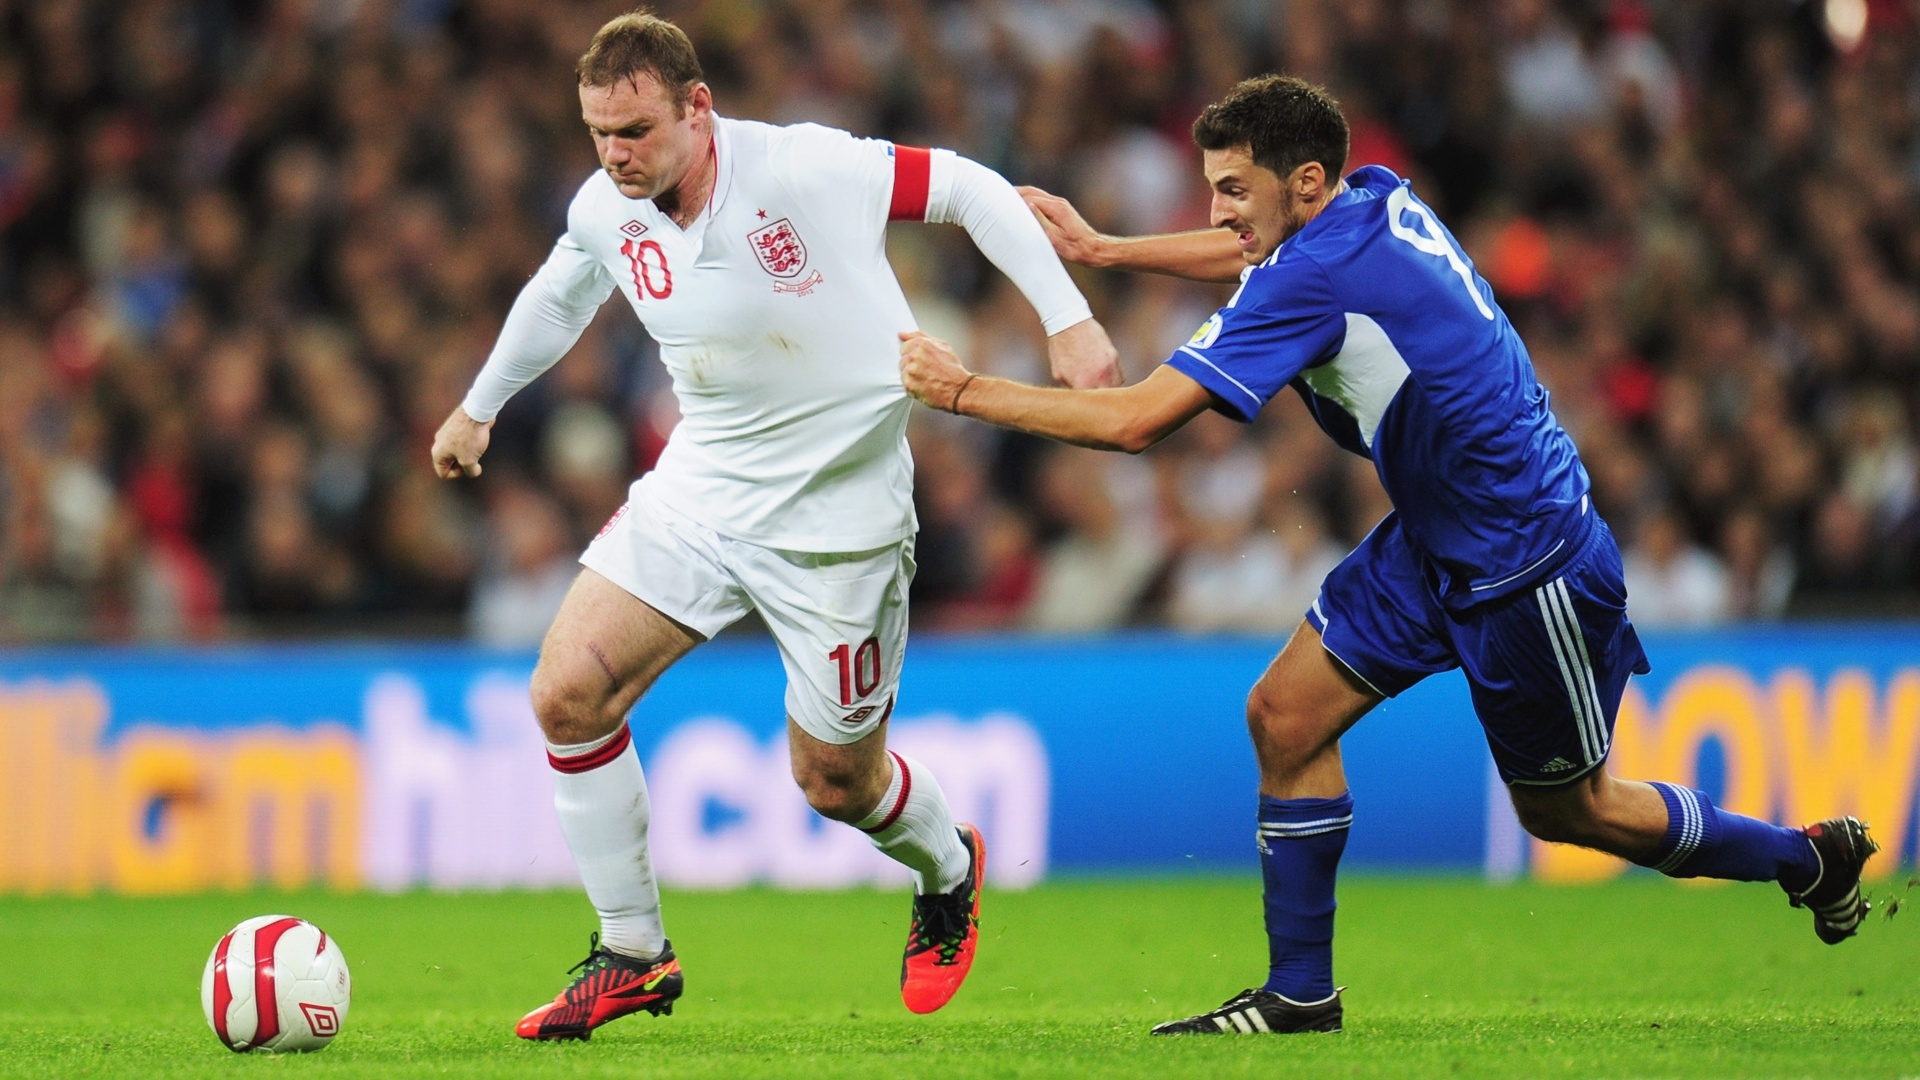 Wayne Rooney em ao durante a goleada por 5 a 0 da Inglaterra sobre San Marino, pelas eliminatrias europeias para a Copa 2014